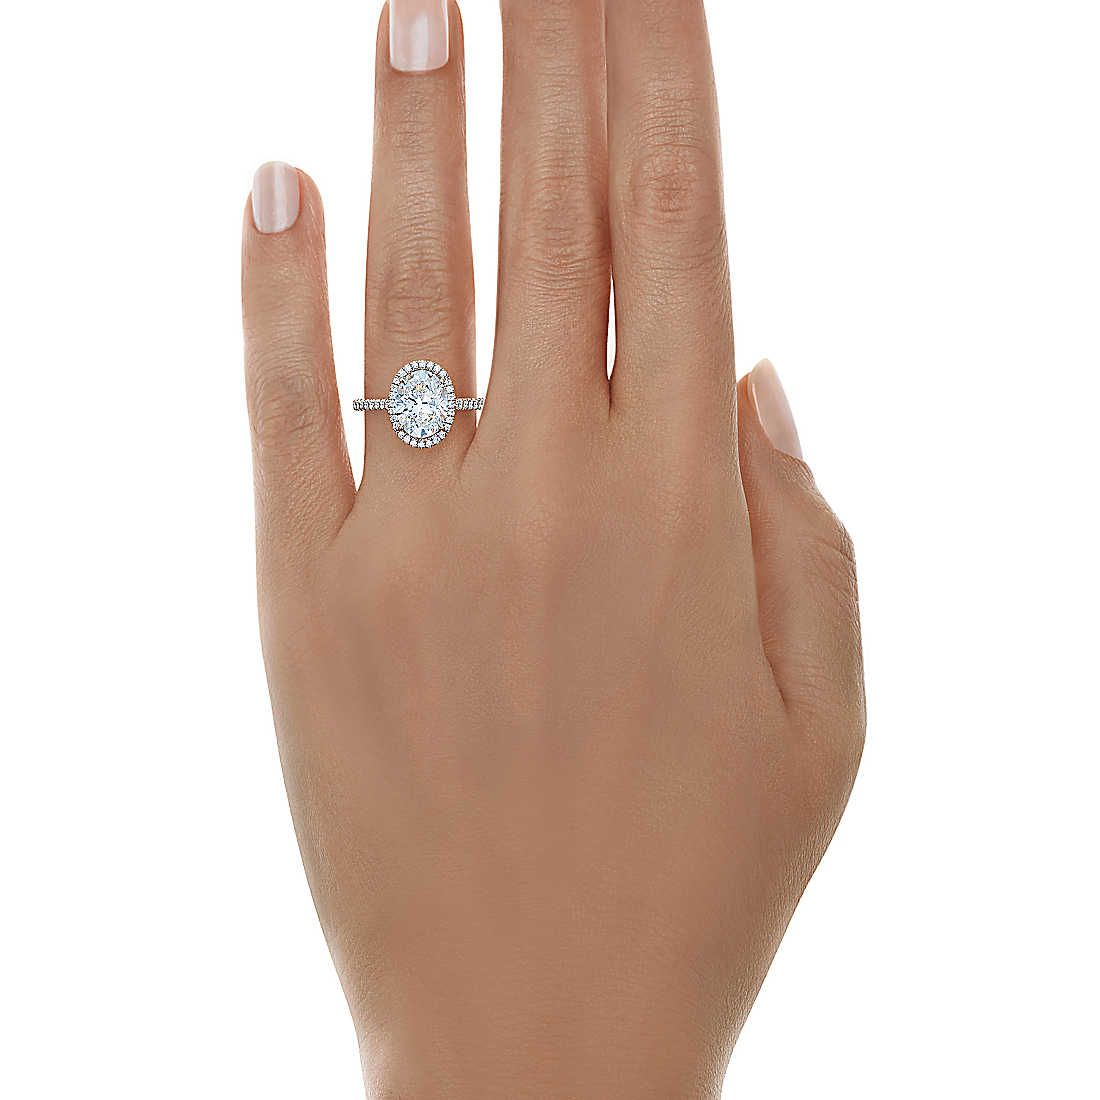 Tiffany Soleste 174 Oval Engagement Rings Tiffany Amp Co